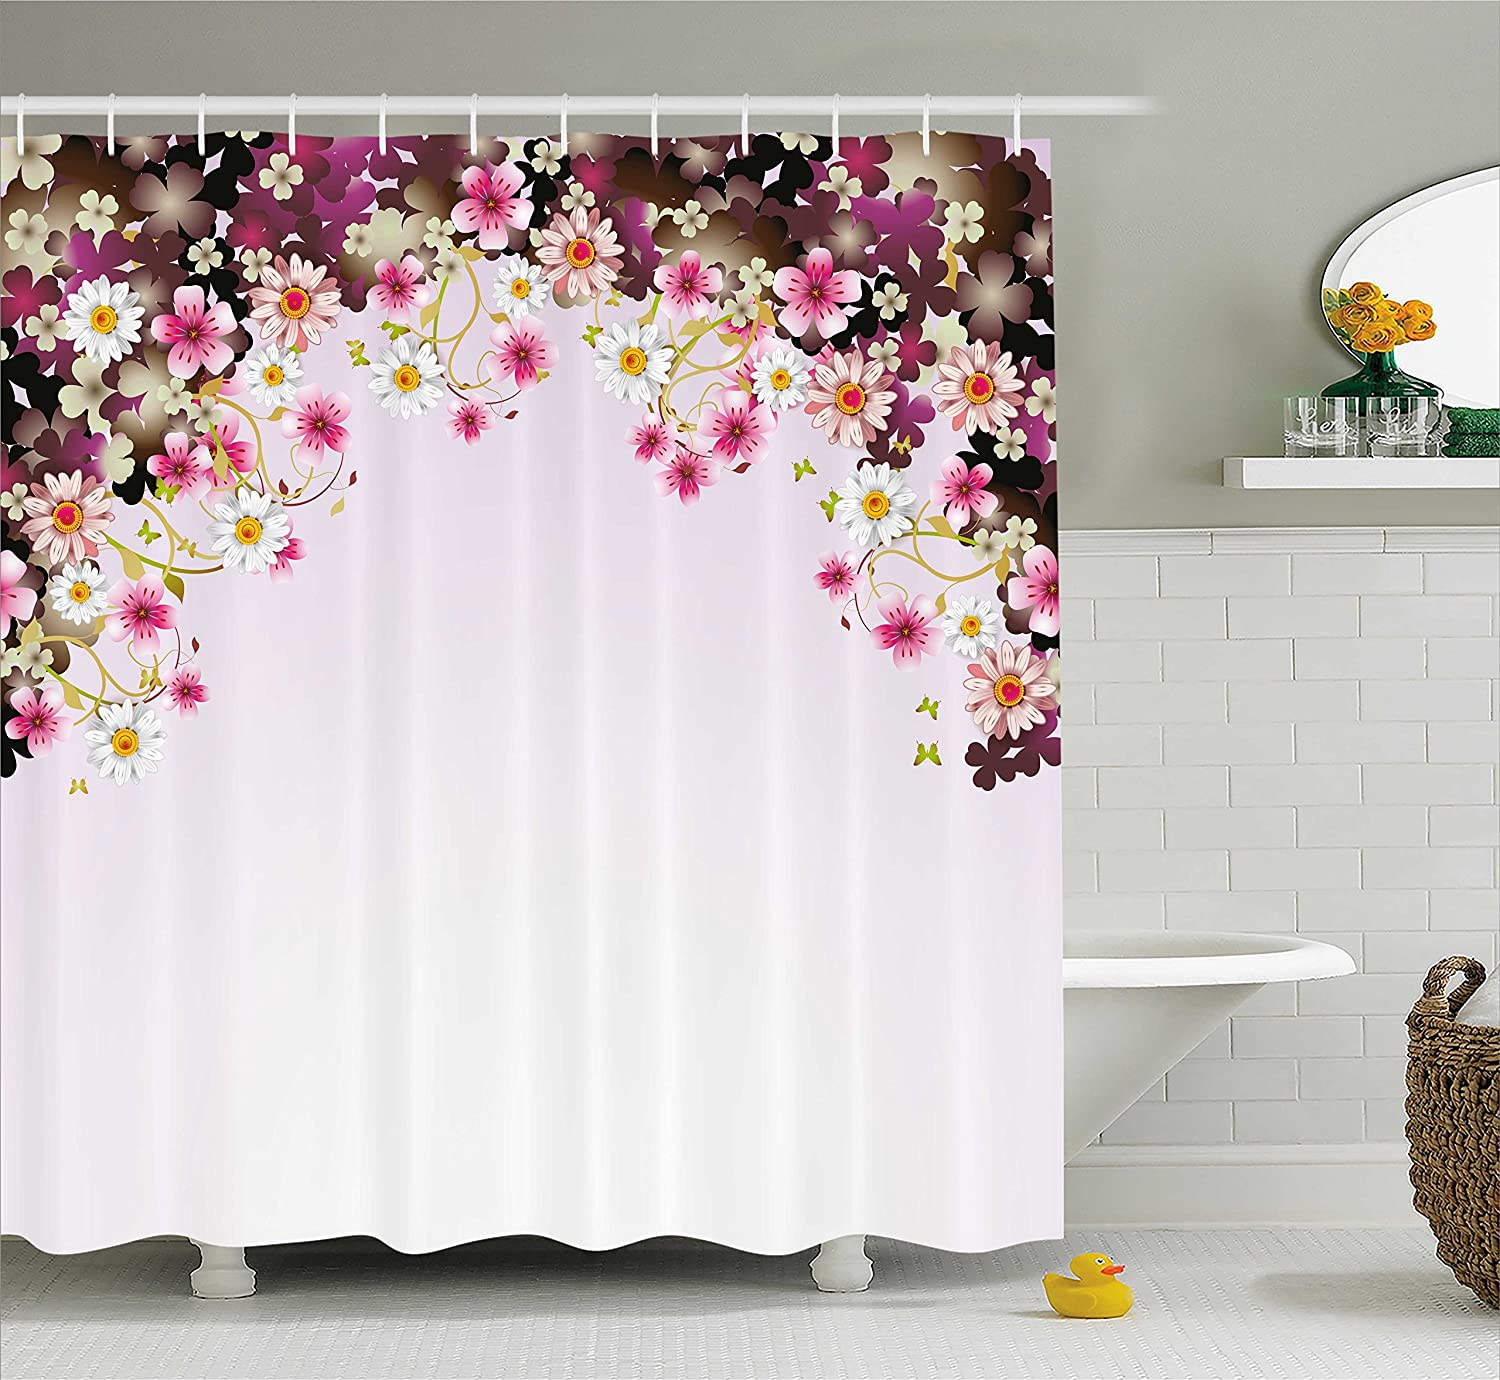 Ambesonne Grunge Decor Shower Curtain Set, Rustic Wooden Garden Fence with a Red Daisy Bloom Picture Flower Art Floral Garden Design, Bathroom Accessories Collection, Polyester Fabric,Grey Red sc_20971